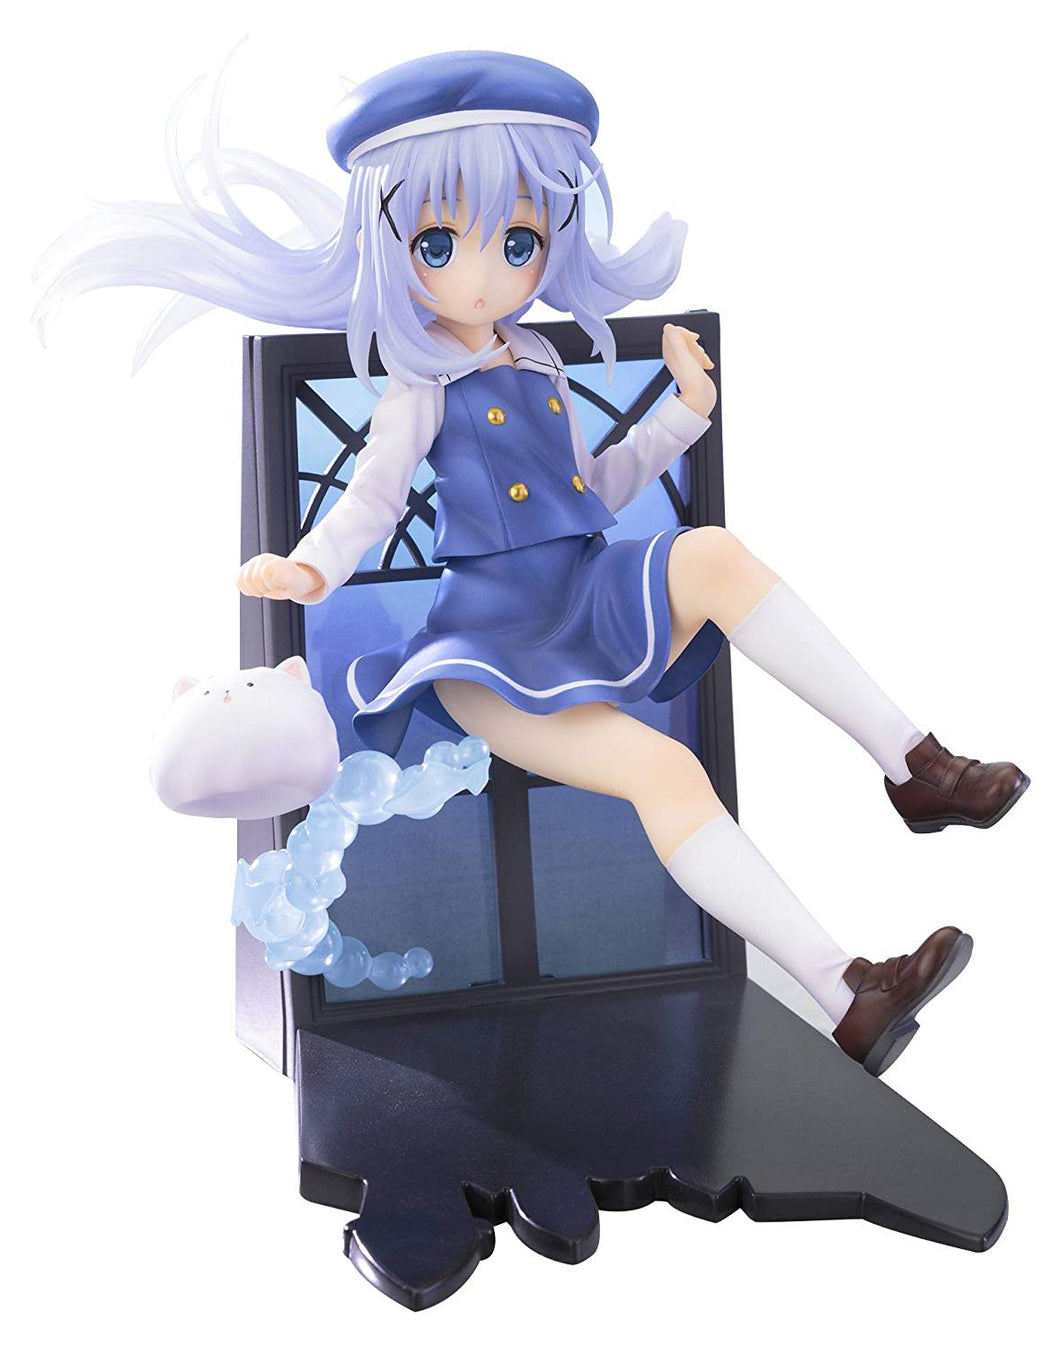 Is The Order A Rabbit?: Kotobukiya Chino Ani Statue